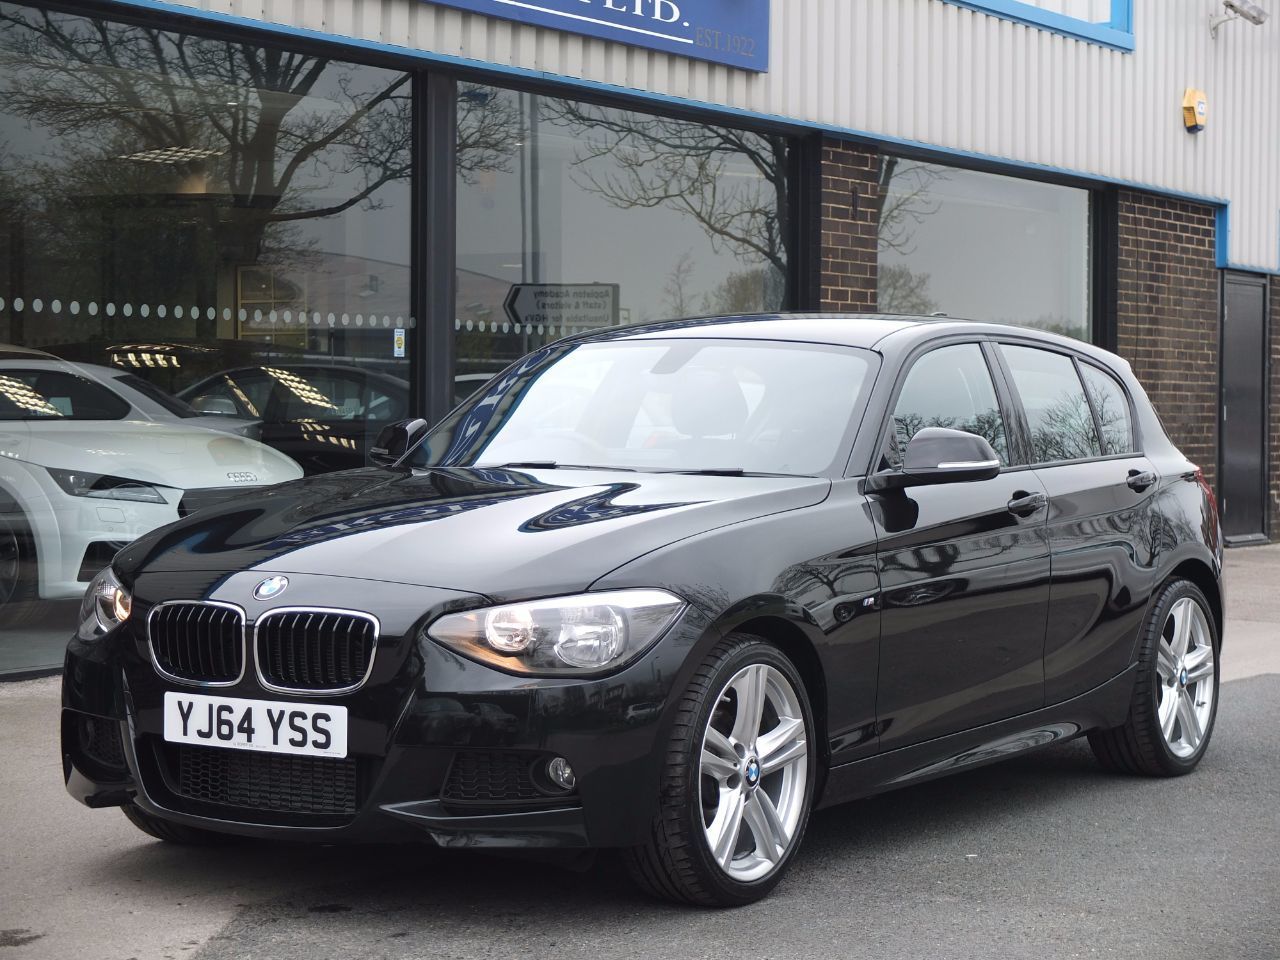 Le Meilleur Second Hand Bmw 1 Series 118D M Sport 5 Door Automatic Ce Mois Ci